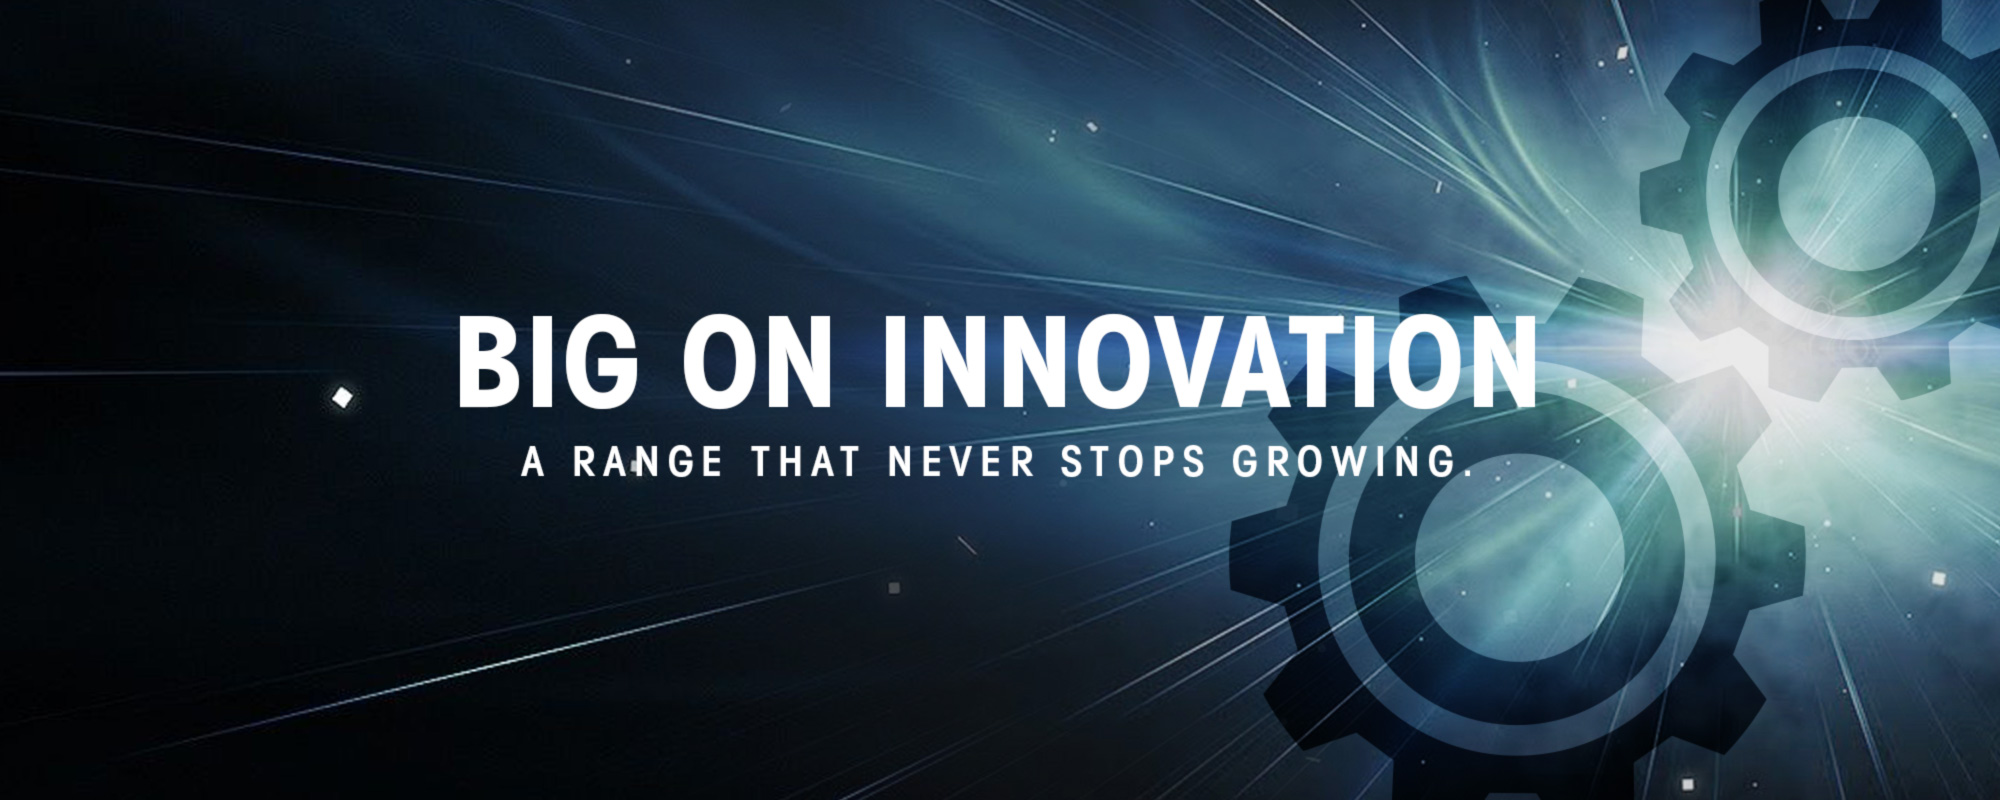 Big On Innovation a range that never stops growing